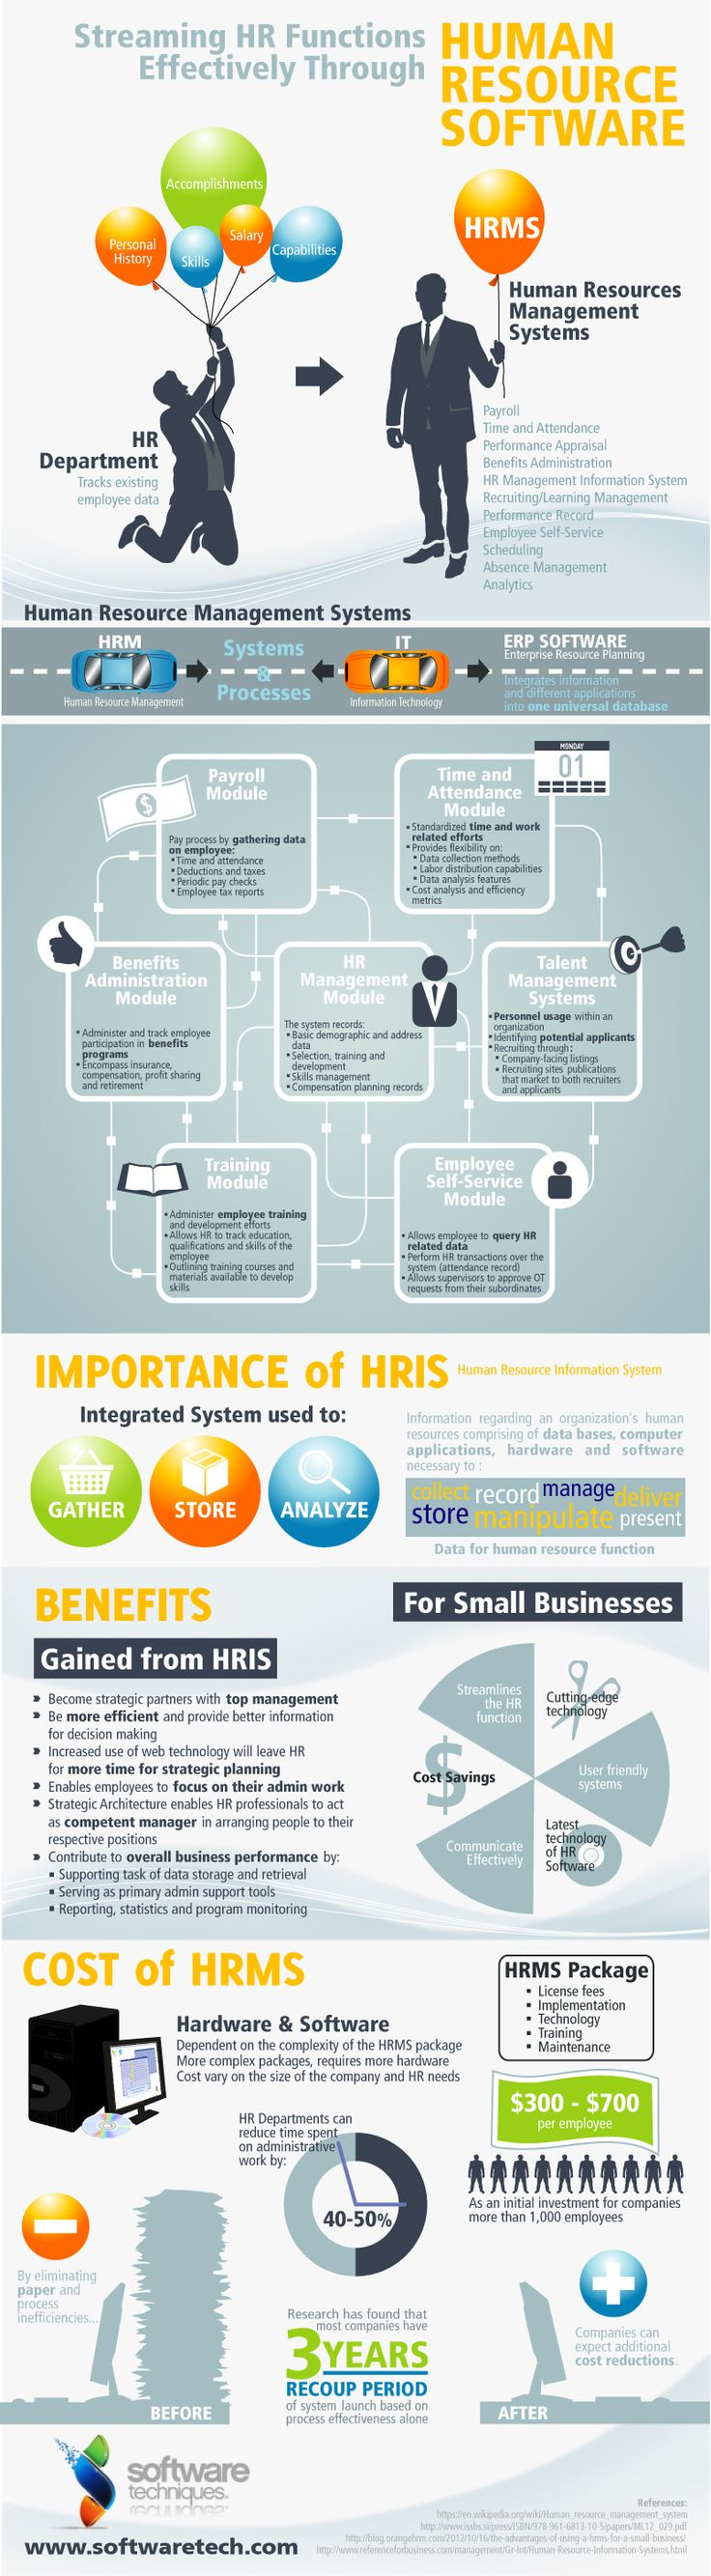 Streaming HR Functions Effectively Through Human Resource Software #Infographic